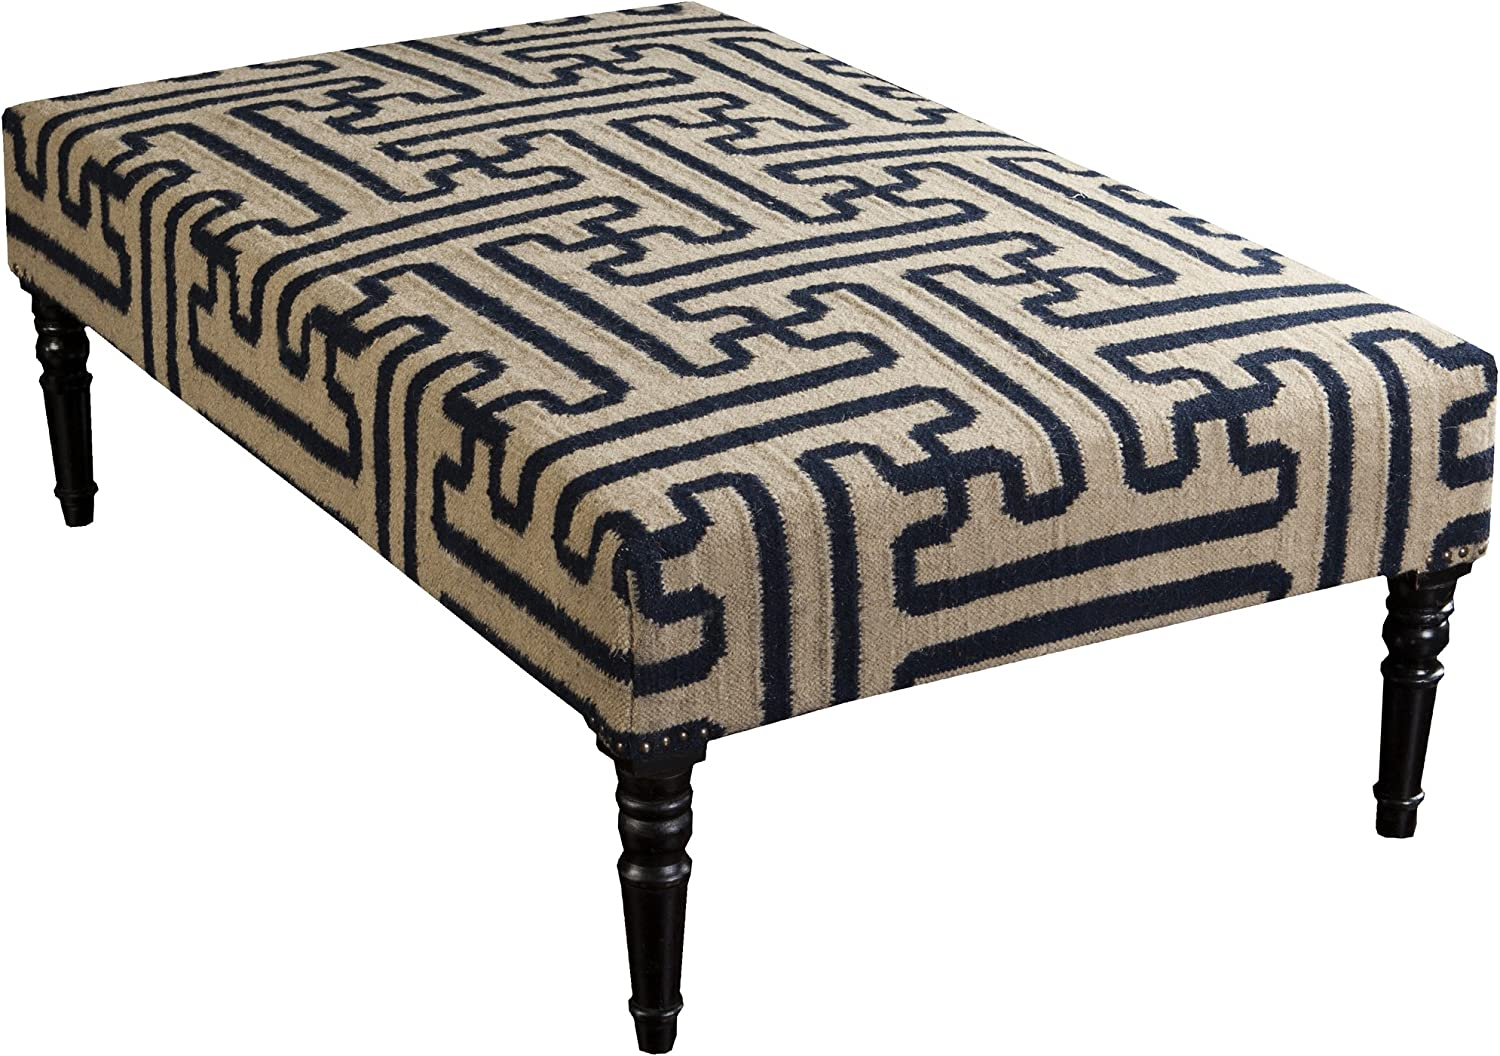 Surya Ottoman, 52 by 32 by 18-Inch, Olive/Navy